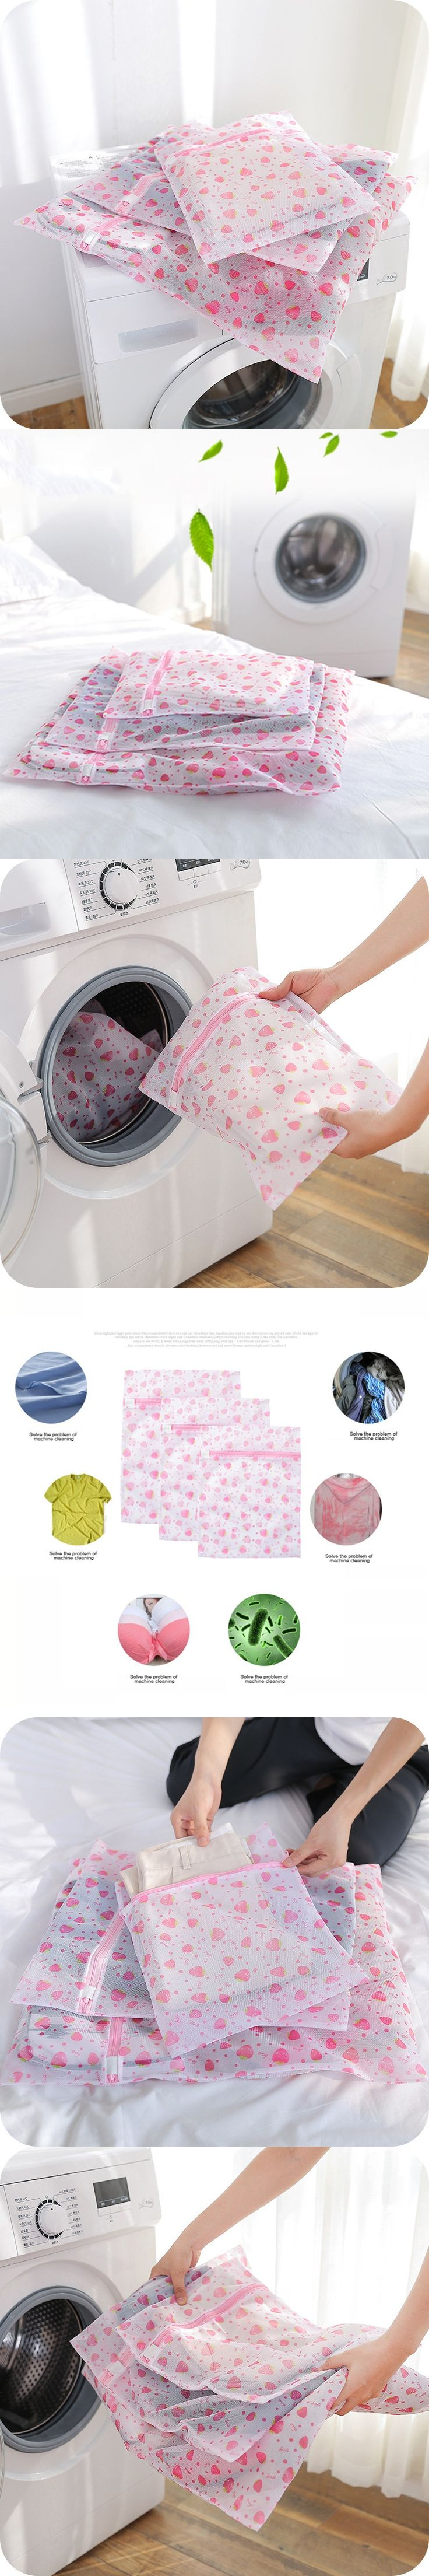 Women Printing Nylon Hosiery Bra Underwear Lingerie Washing Bag Protecting Mesh Aid Laundry Saver Laundry Bags Baskets